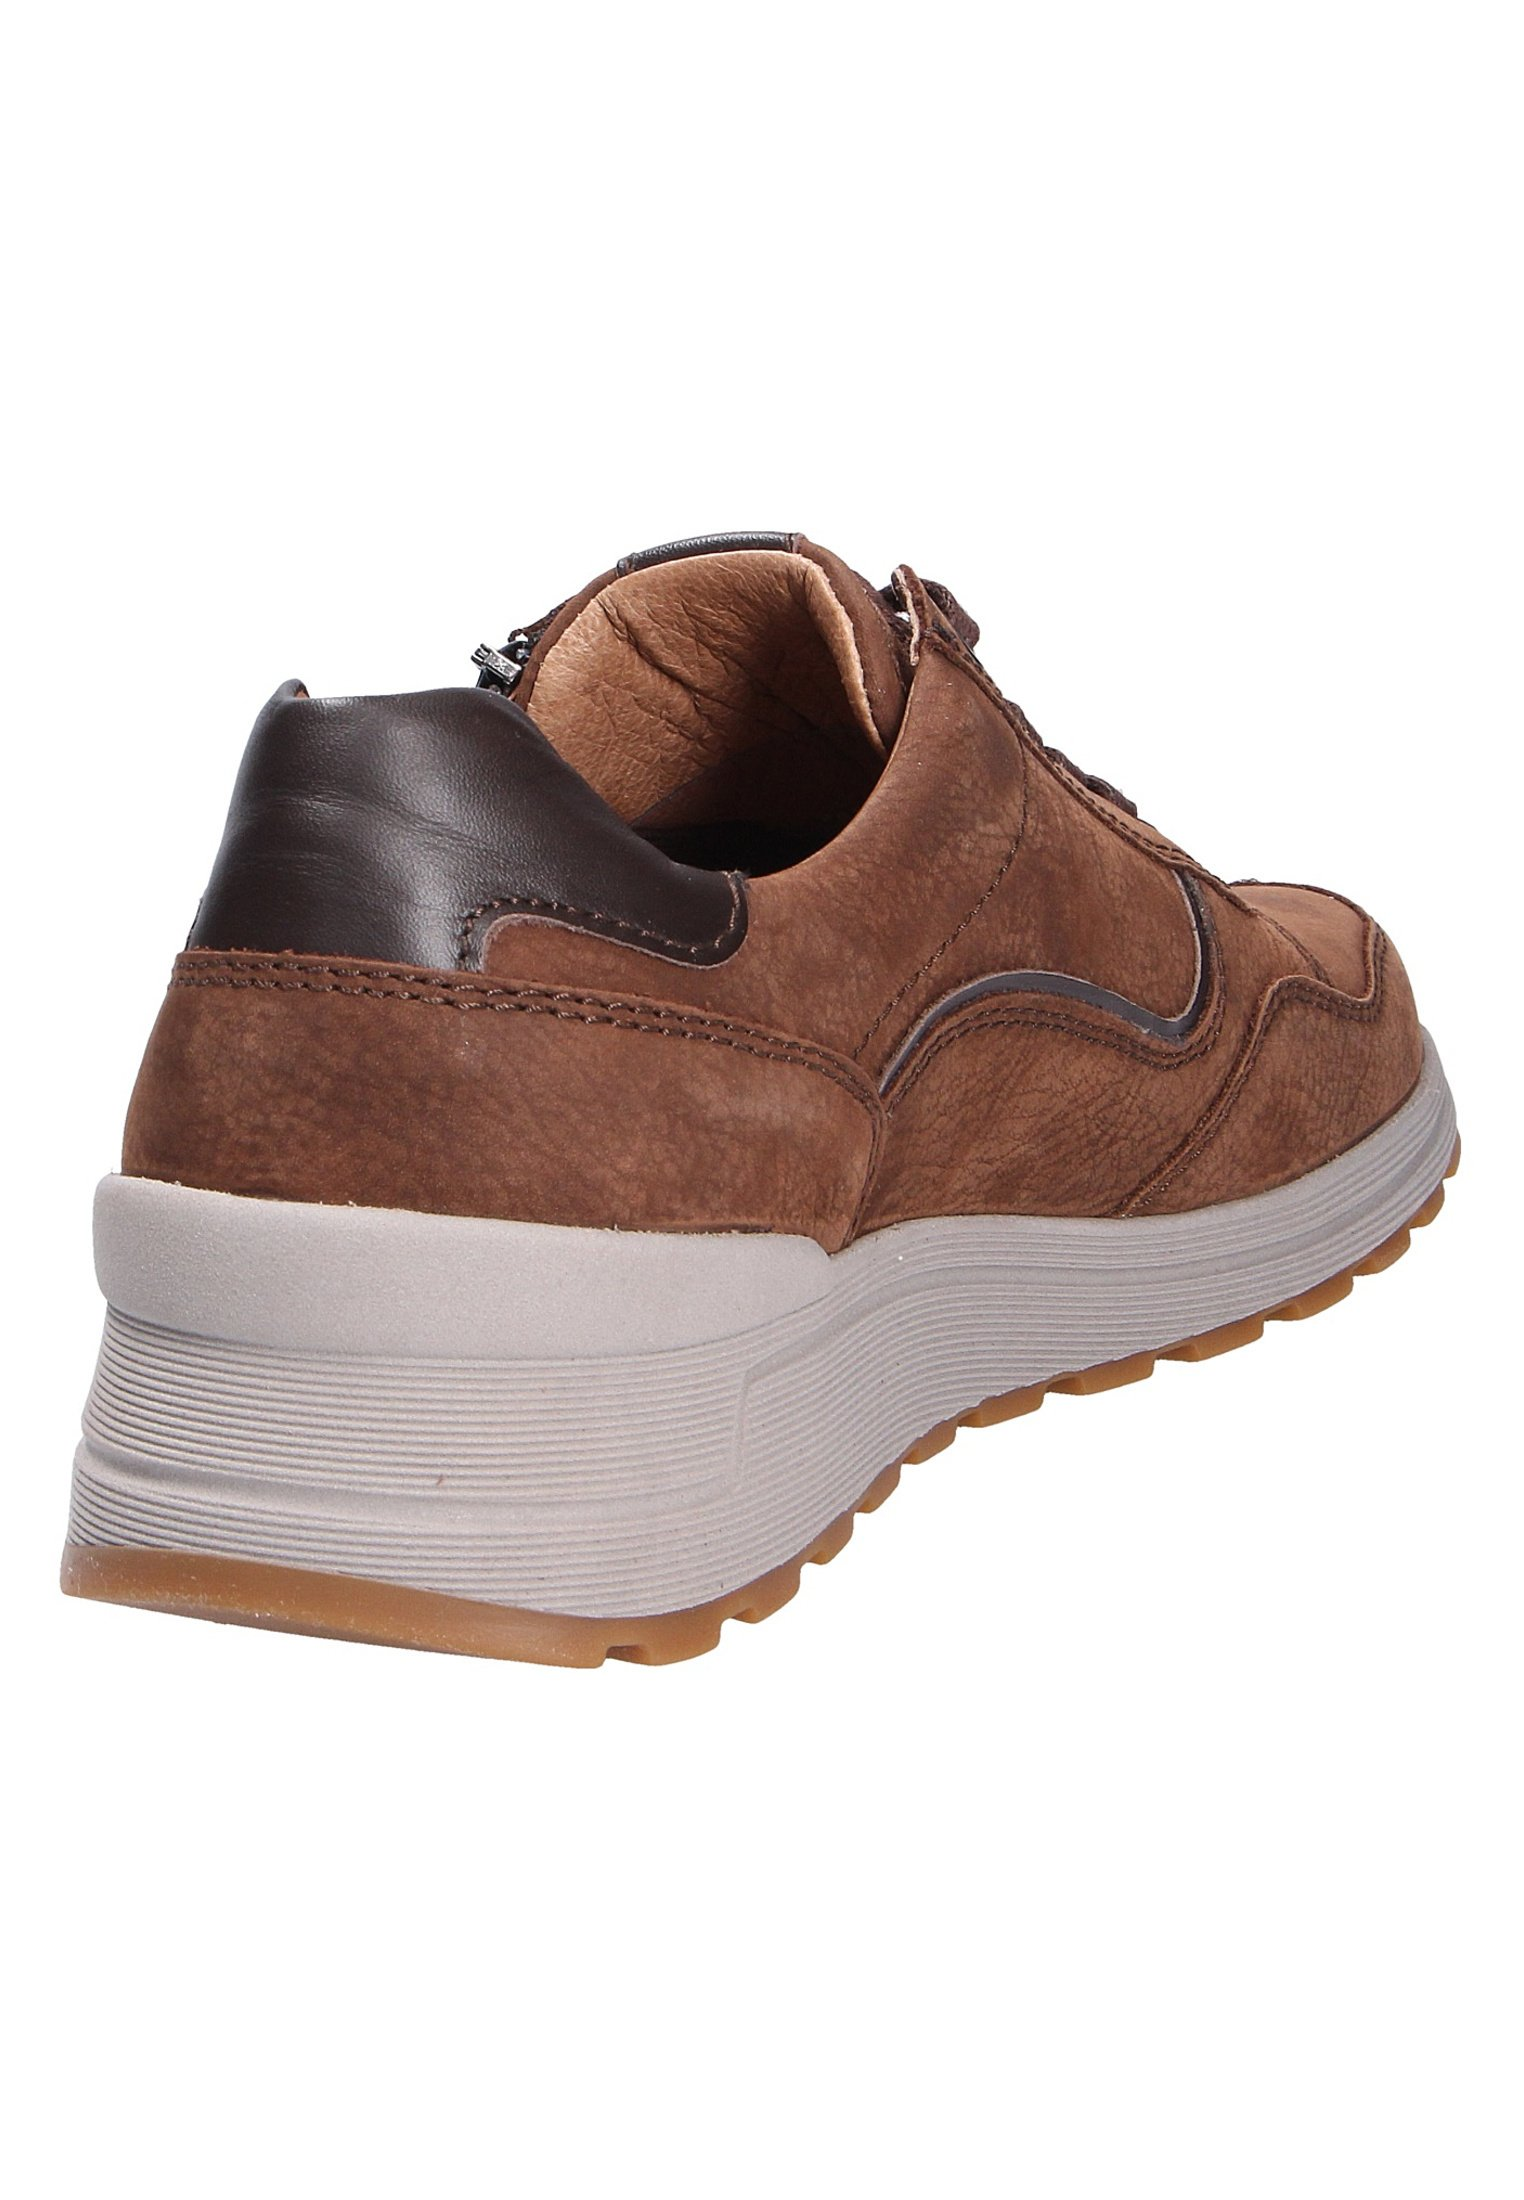 Homme Chaussures à lacets - siennabrasil